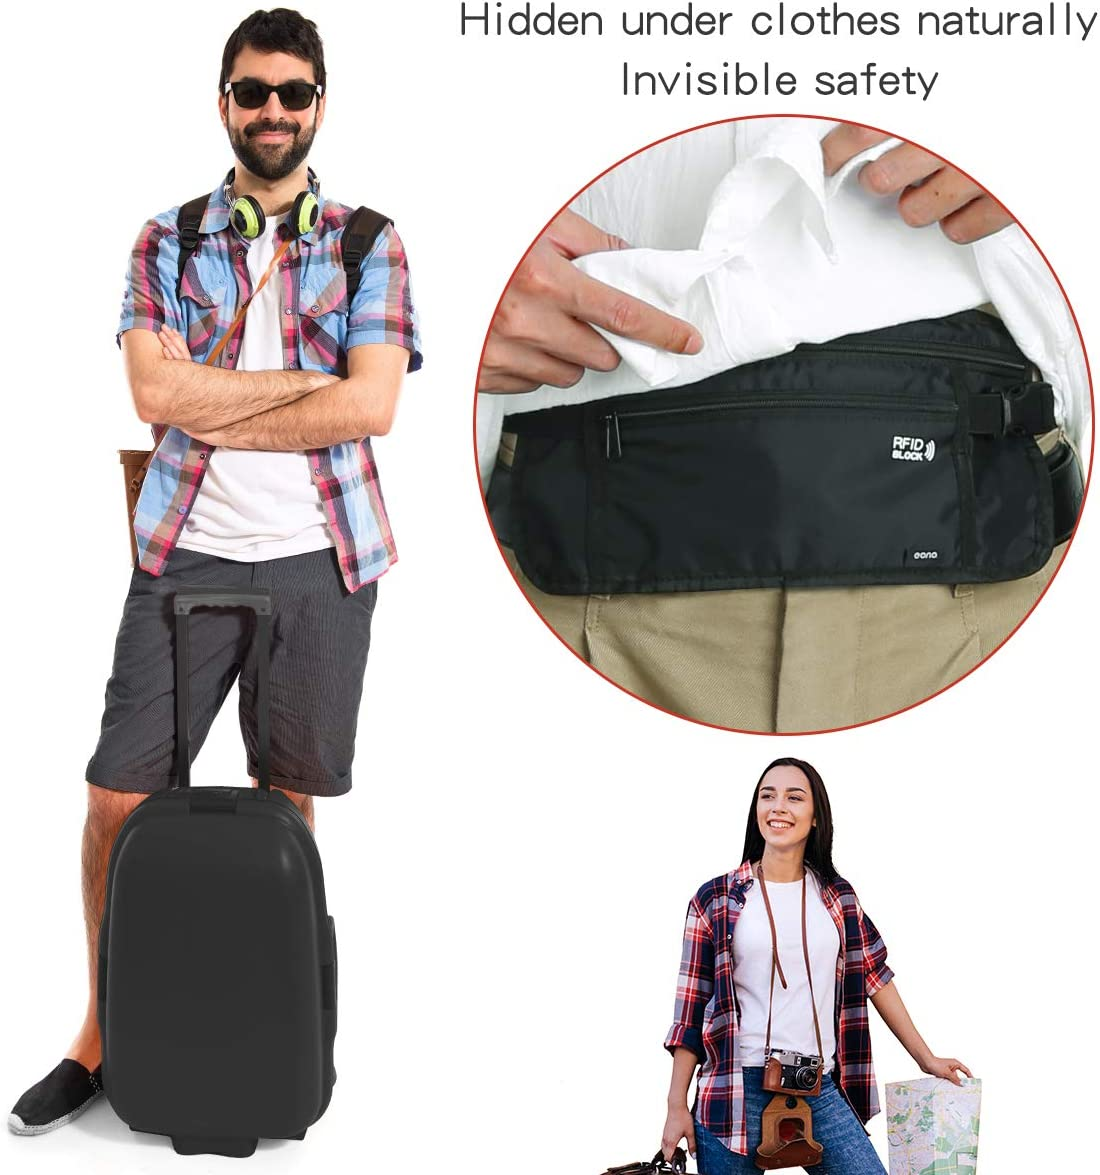 Keys /& Passport with Adjustable Elastic Strap Eono by RFID Hidden Security Money Pouch for Cash Cards Water Resistant Money Belt for Travelling